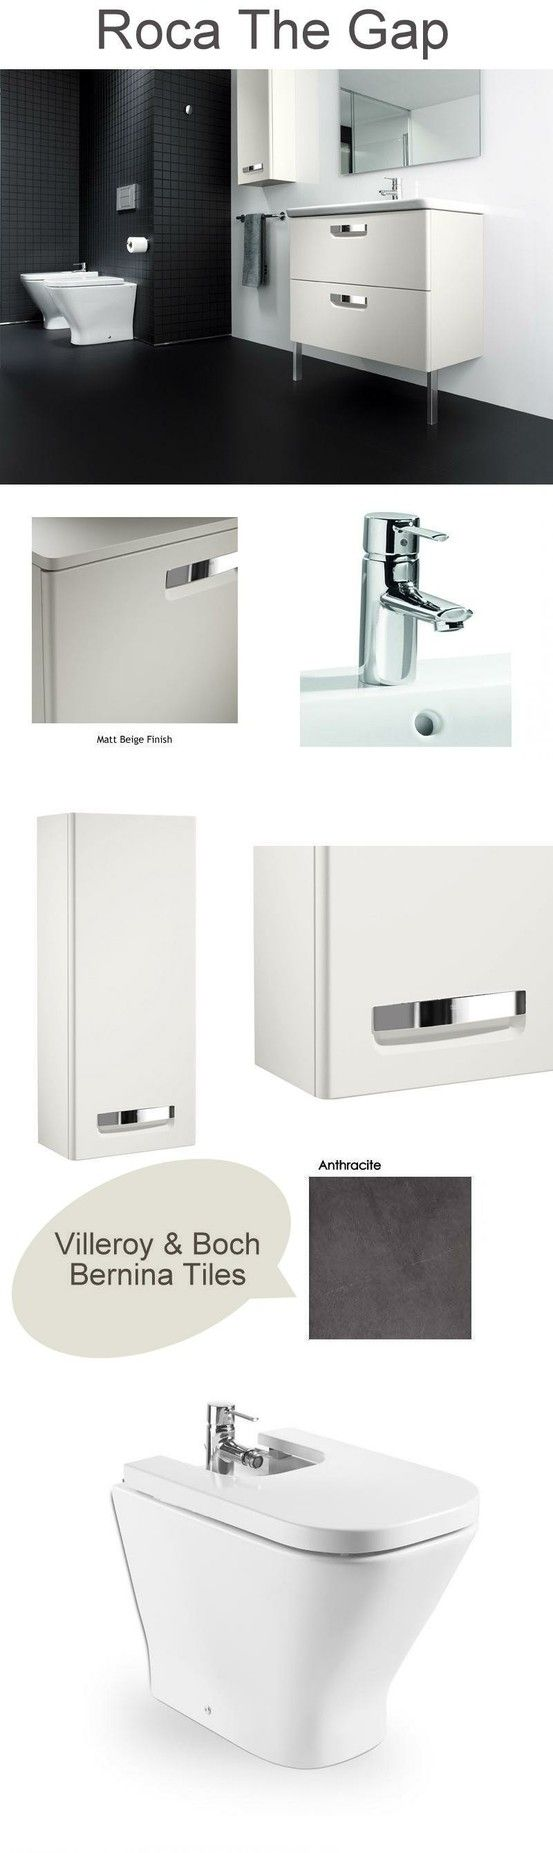 Roca The Gap, in Matte Beige. From UK Bathrooms www.ukbathrooms.com #Beige #Roca #Bathrooms